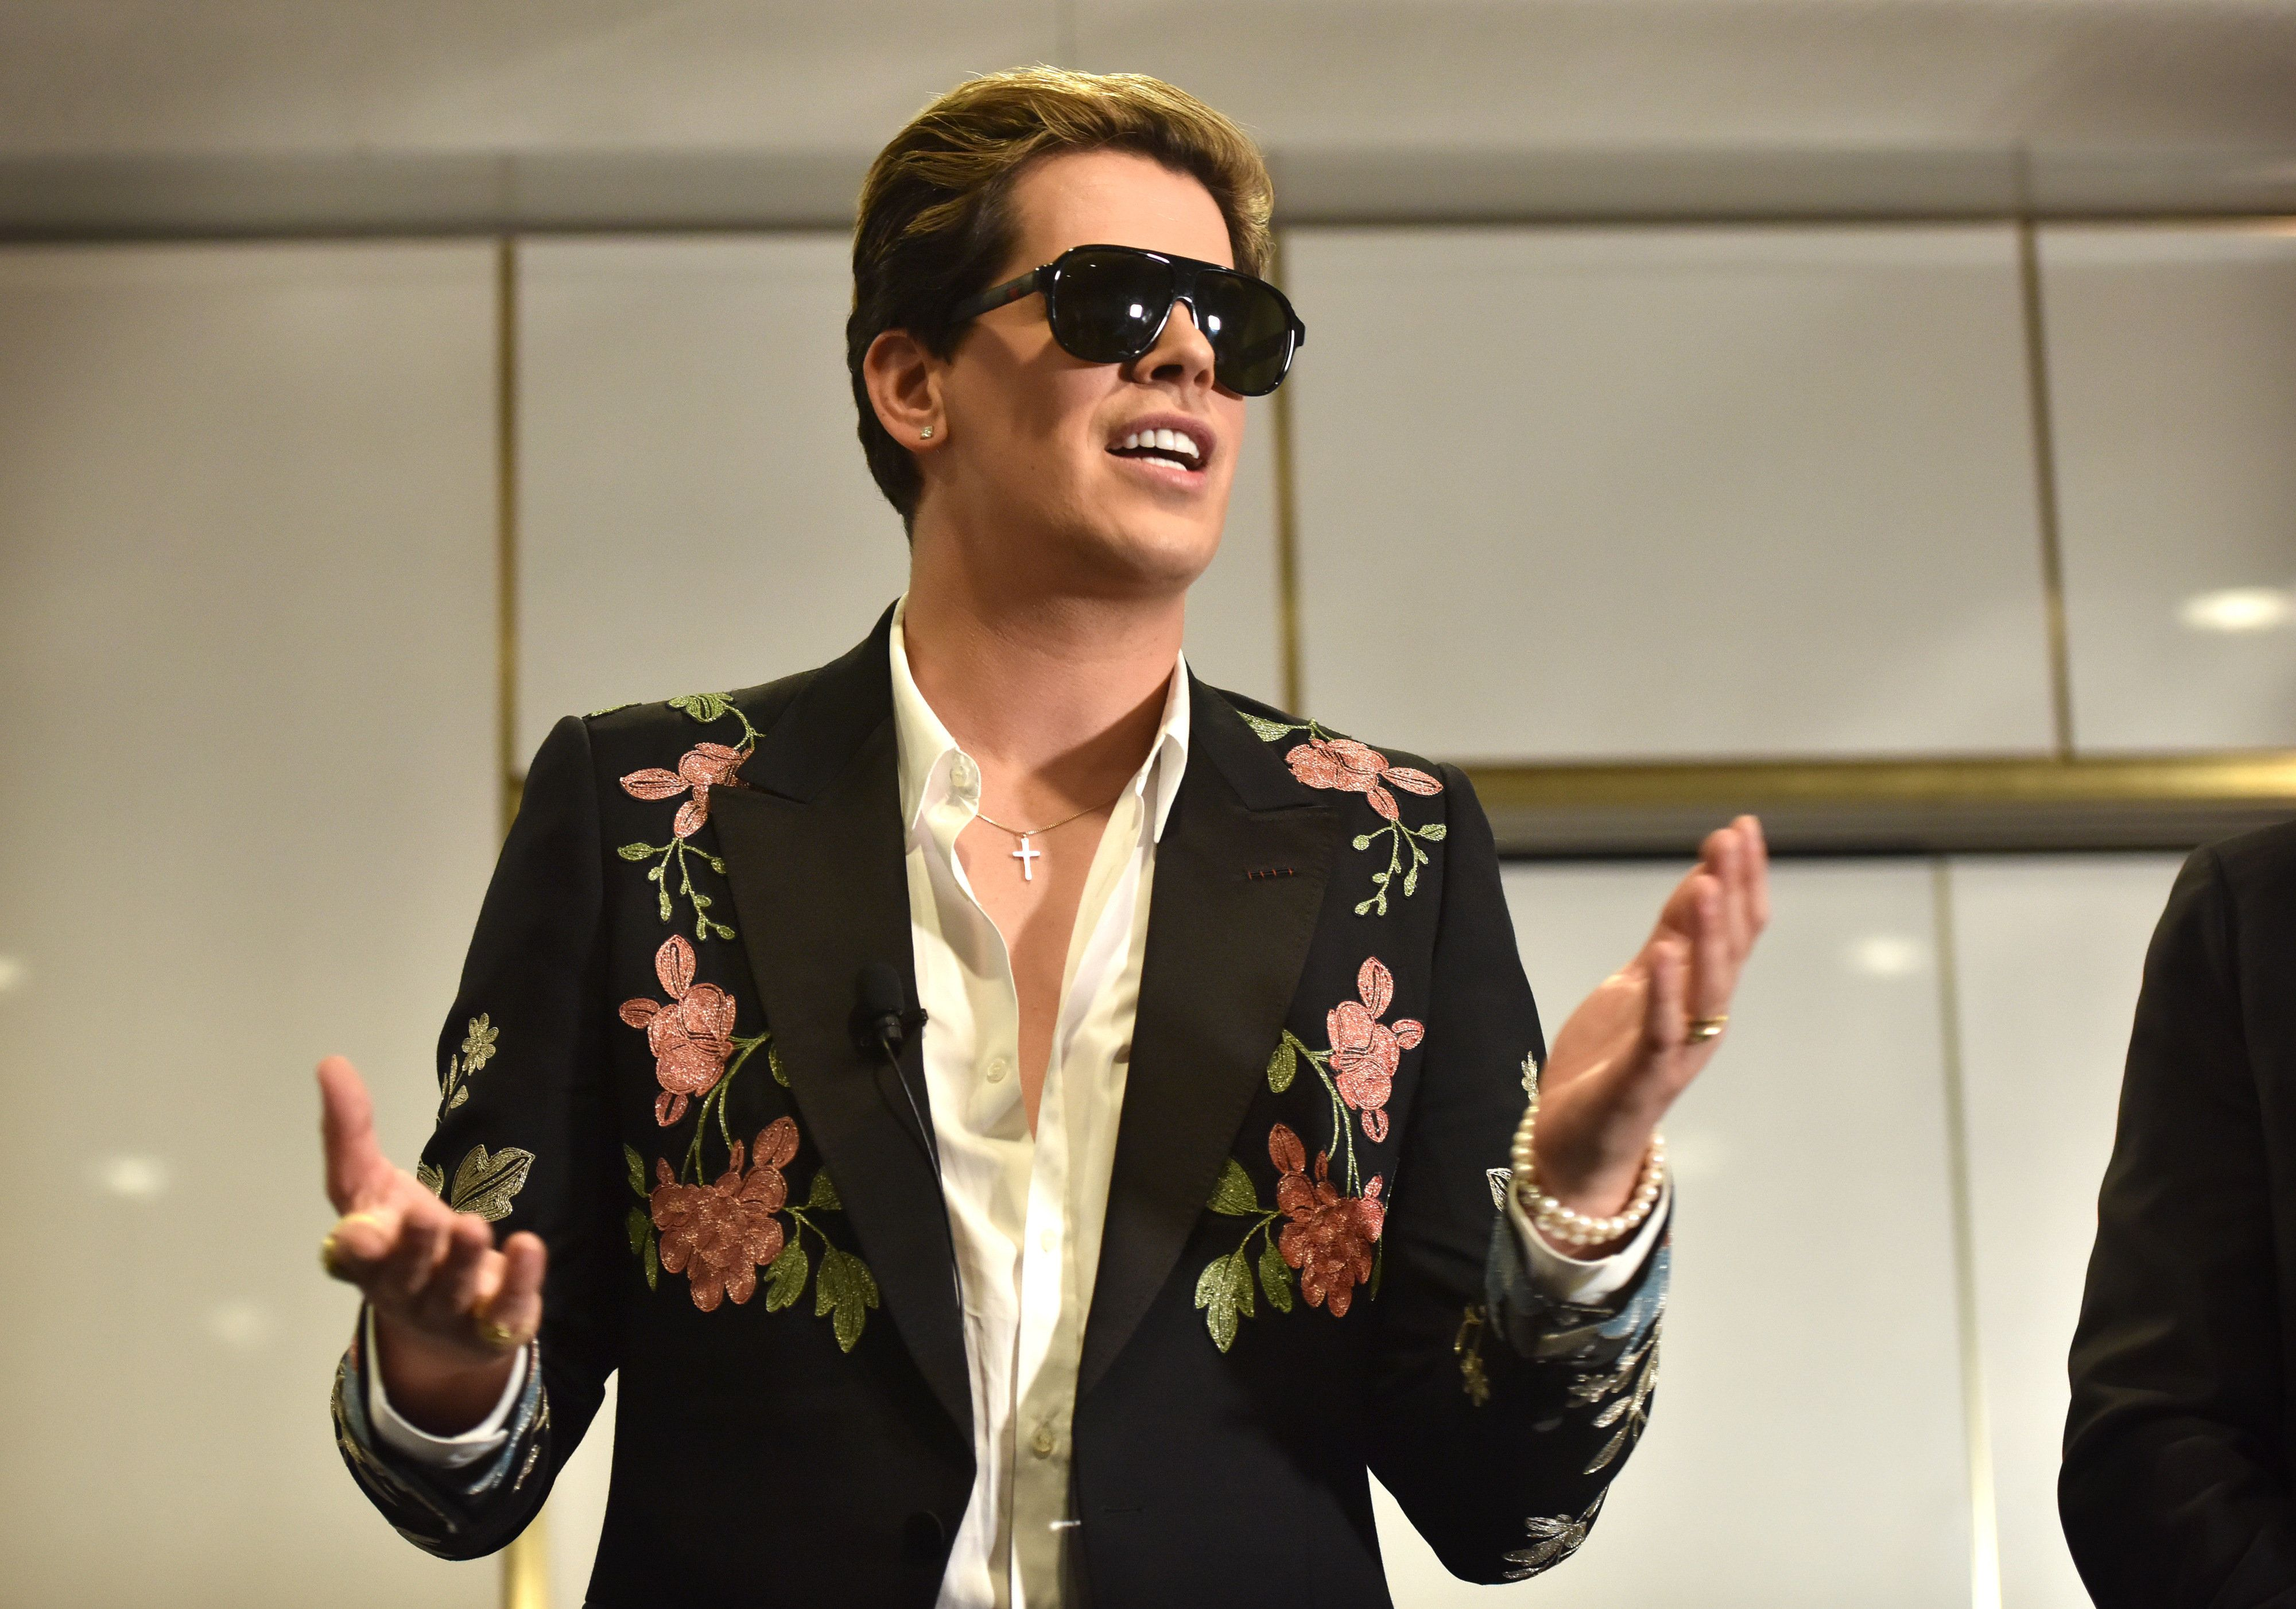 Right-wing British provocateur Milo Yiannopoulos answers questions during a speech at Parliament House in Canberra on December 5, 2017. Yiannopoulos blasted those who do not agree with him as 'petulant babies' after violent protests in Melbourne. The polarising former Breitbart editor is touring with his 'The Troll Academy' speaking show. Hundreds of protestors clashed with police and supporters of Yiannopoulos outside a supposedly secret venue in Melbourne on December 4.  / AFP PHOTO / MARK GRAHAM        (Photo credit should read MARK GRAHAM/AFP/Getty Images)